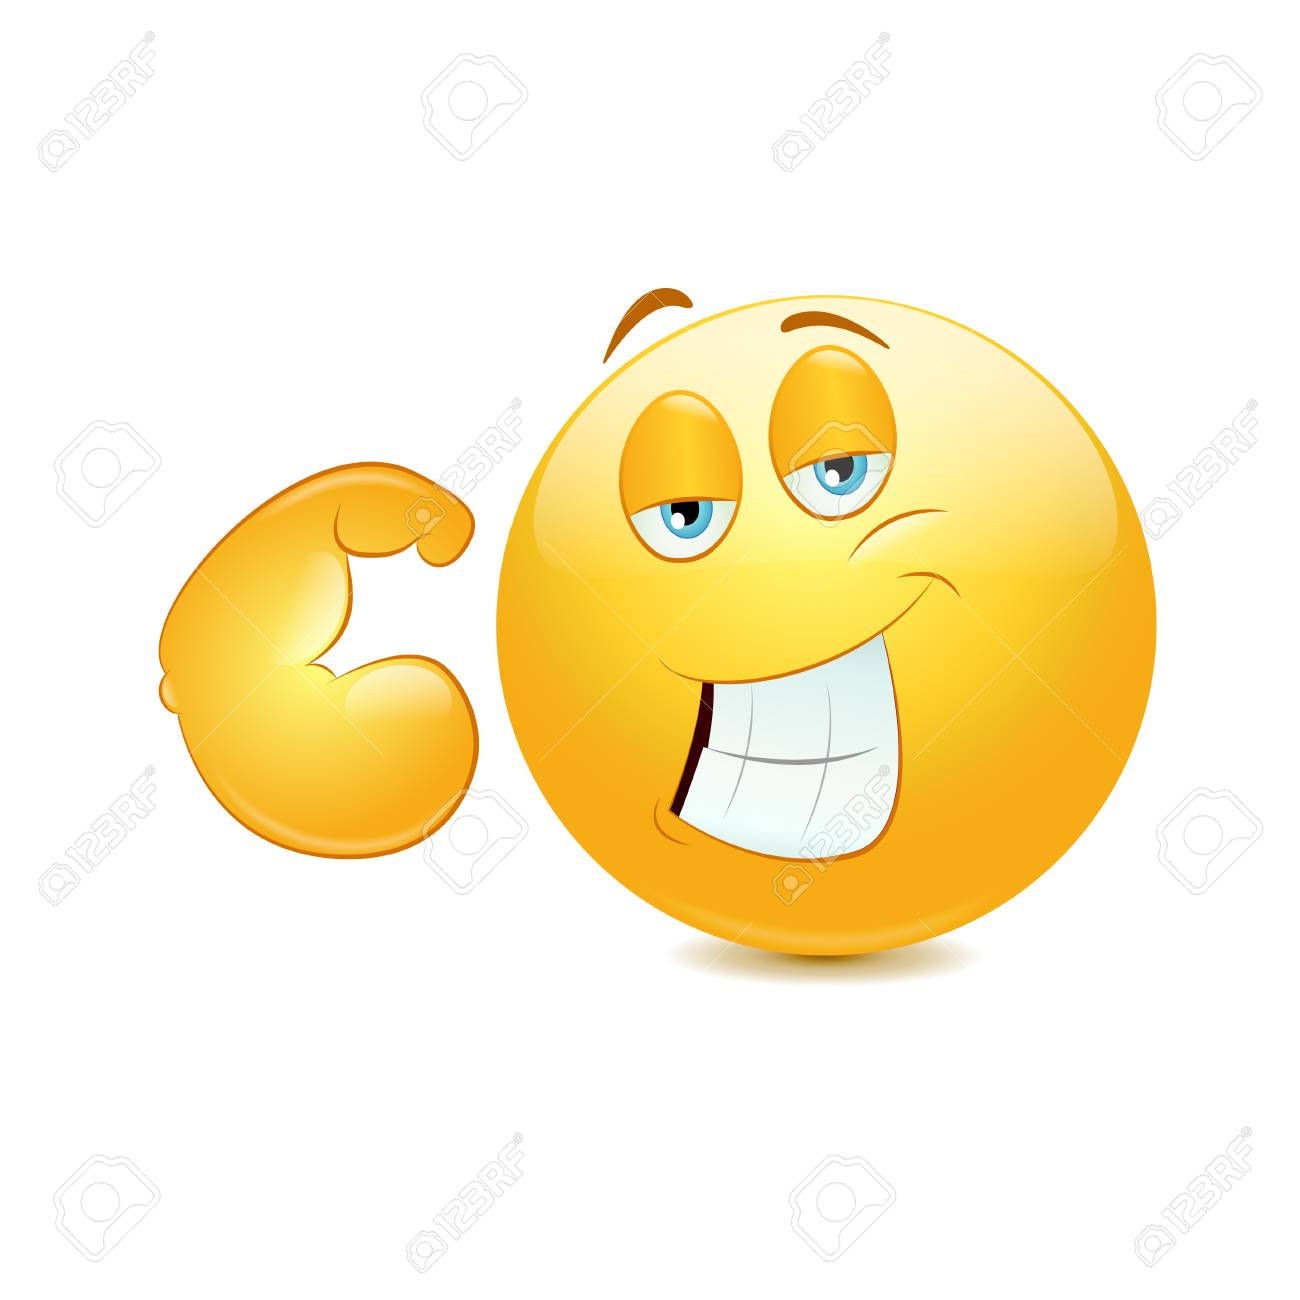 Emoticon Showing His Muscular Arm On A White Background Royalty Free Cliparts Vectors And Stock Illustration Image 91680073